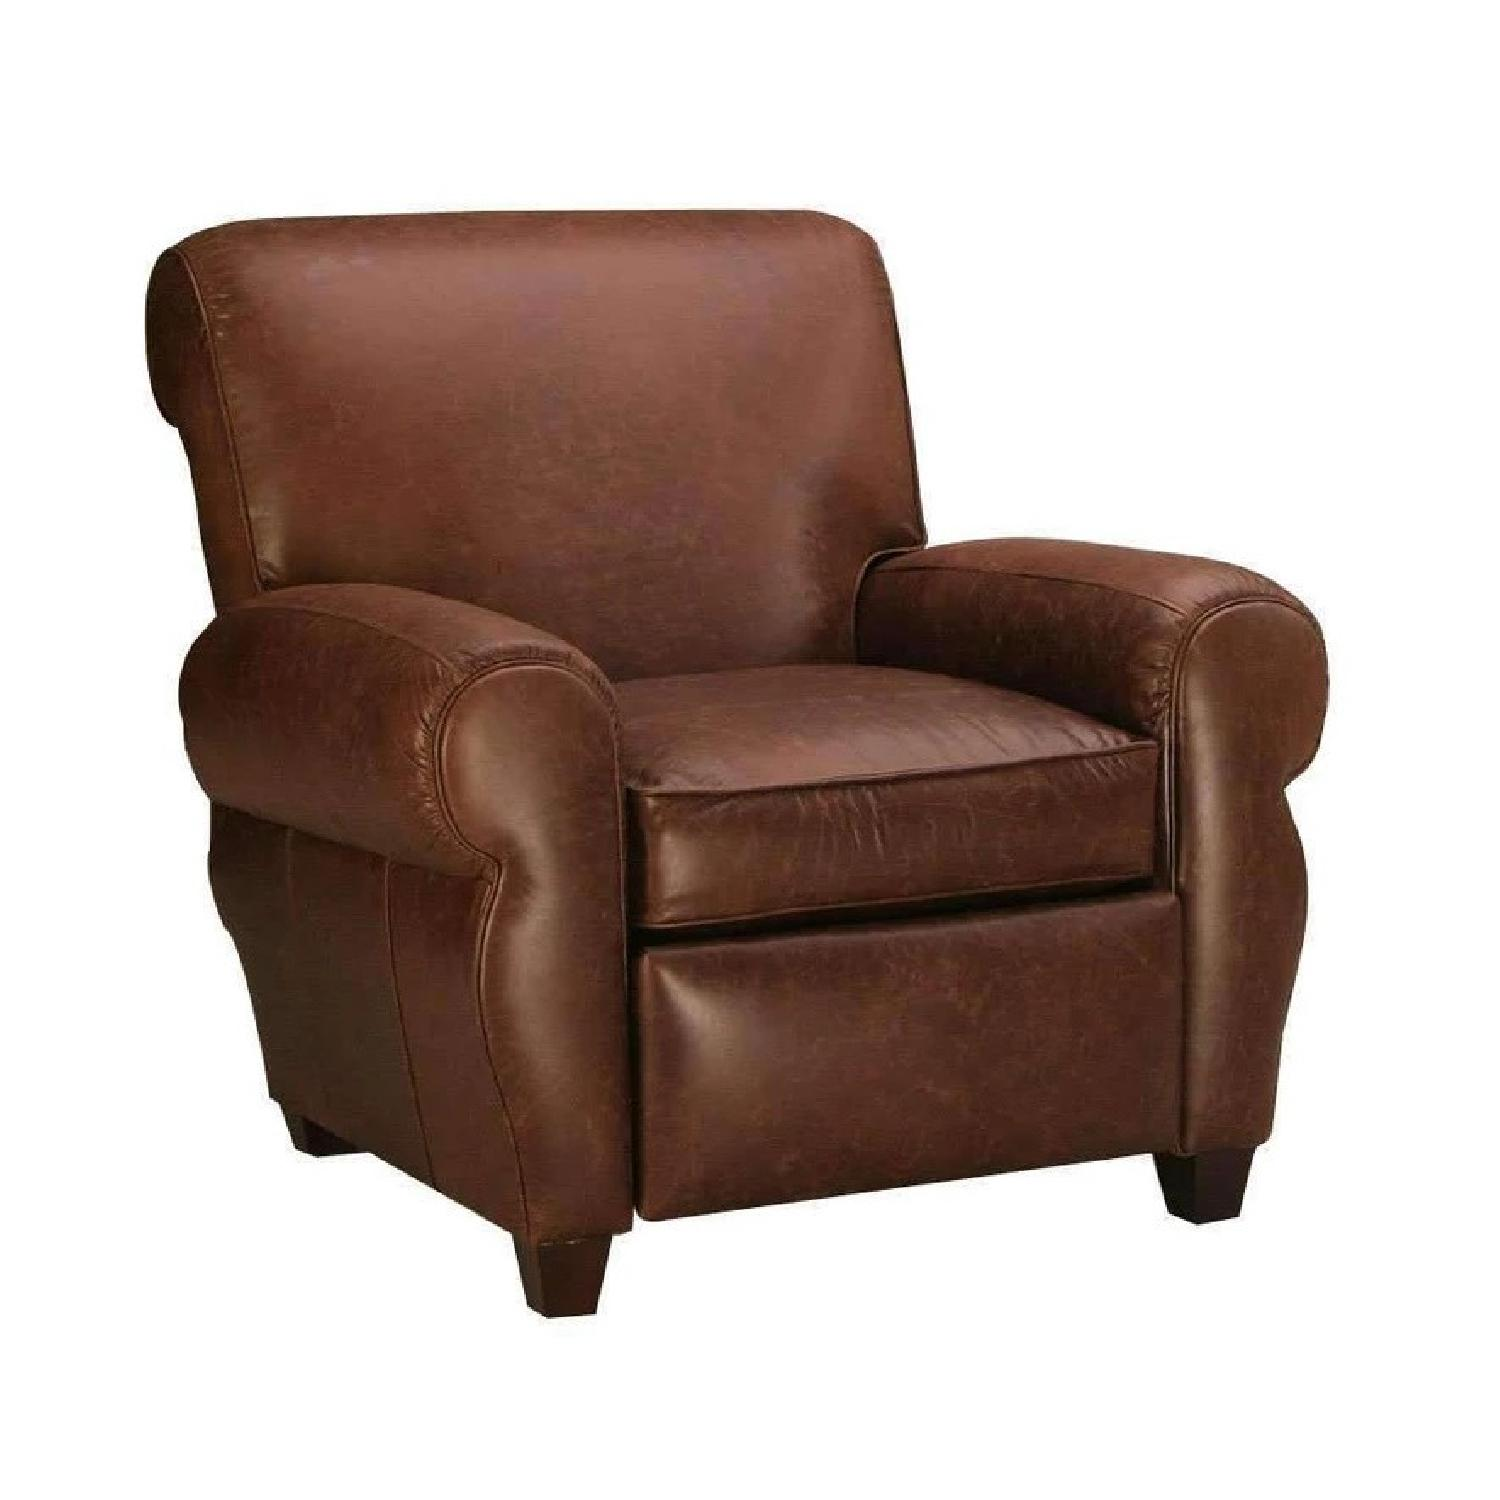 Club Furniture Parker Leather Club Chair Recliner - image-0